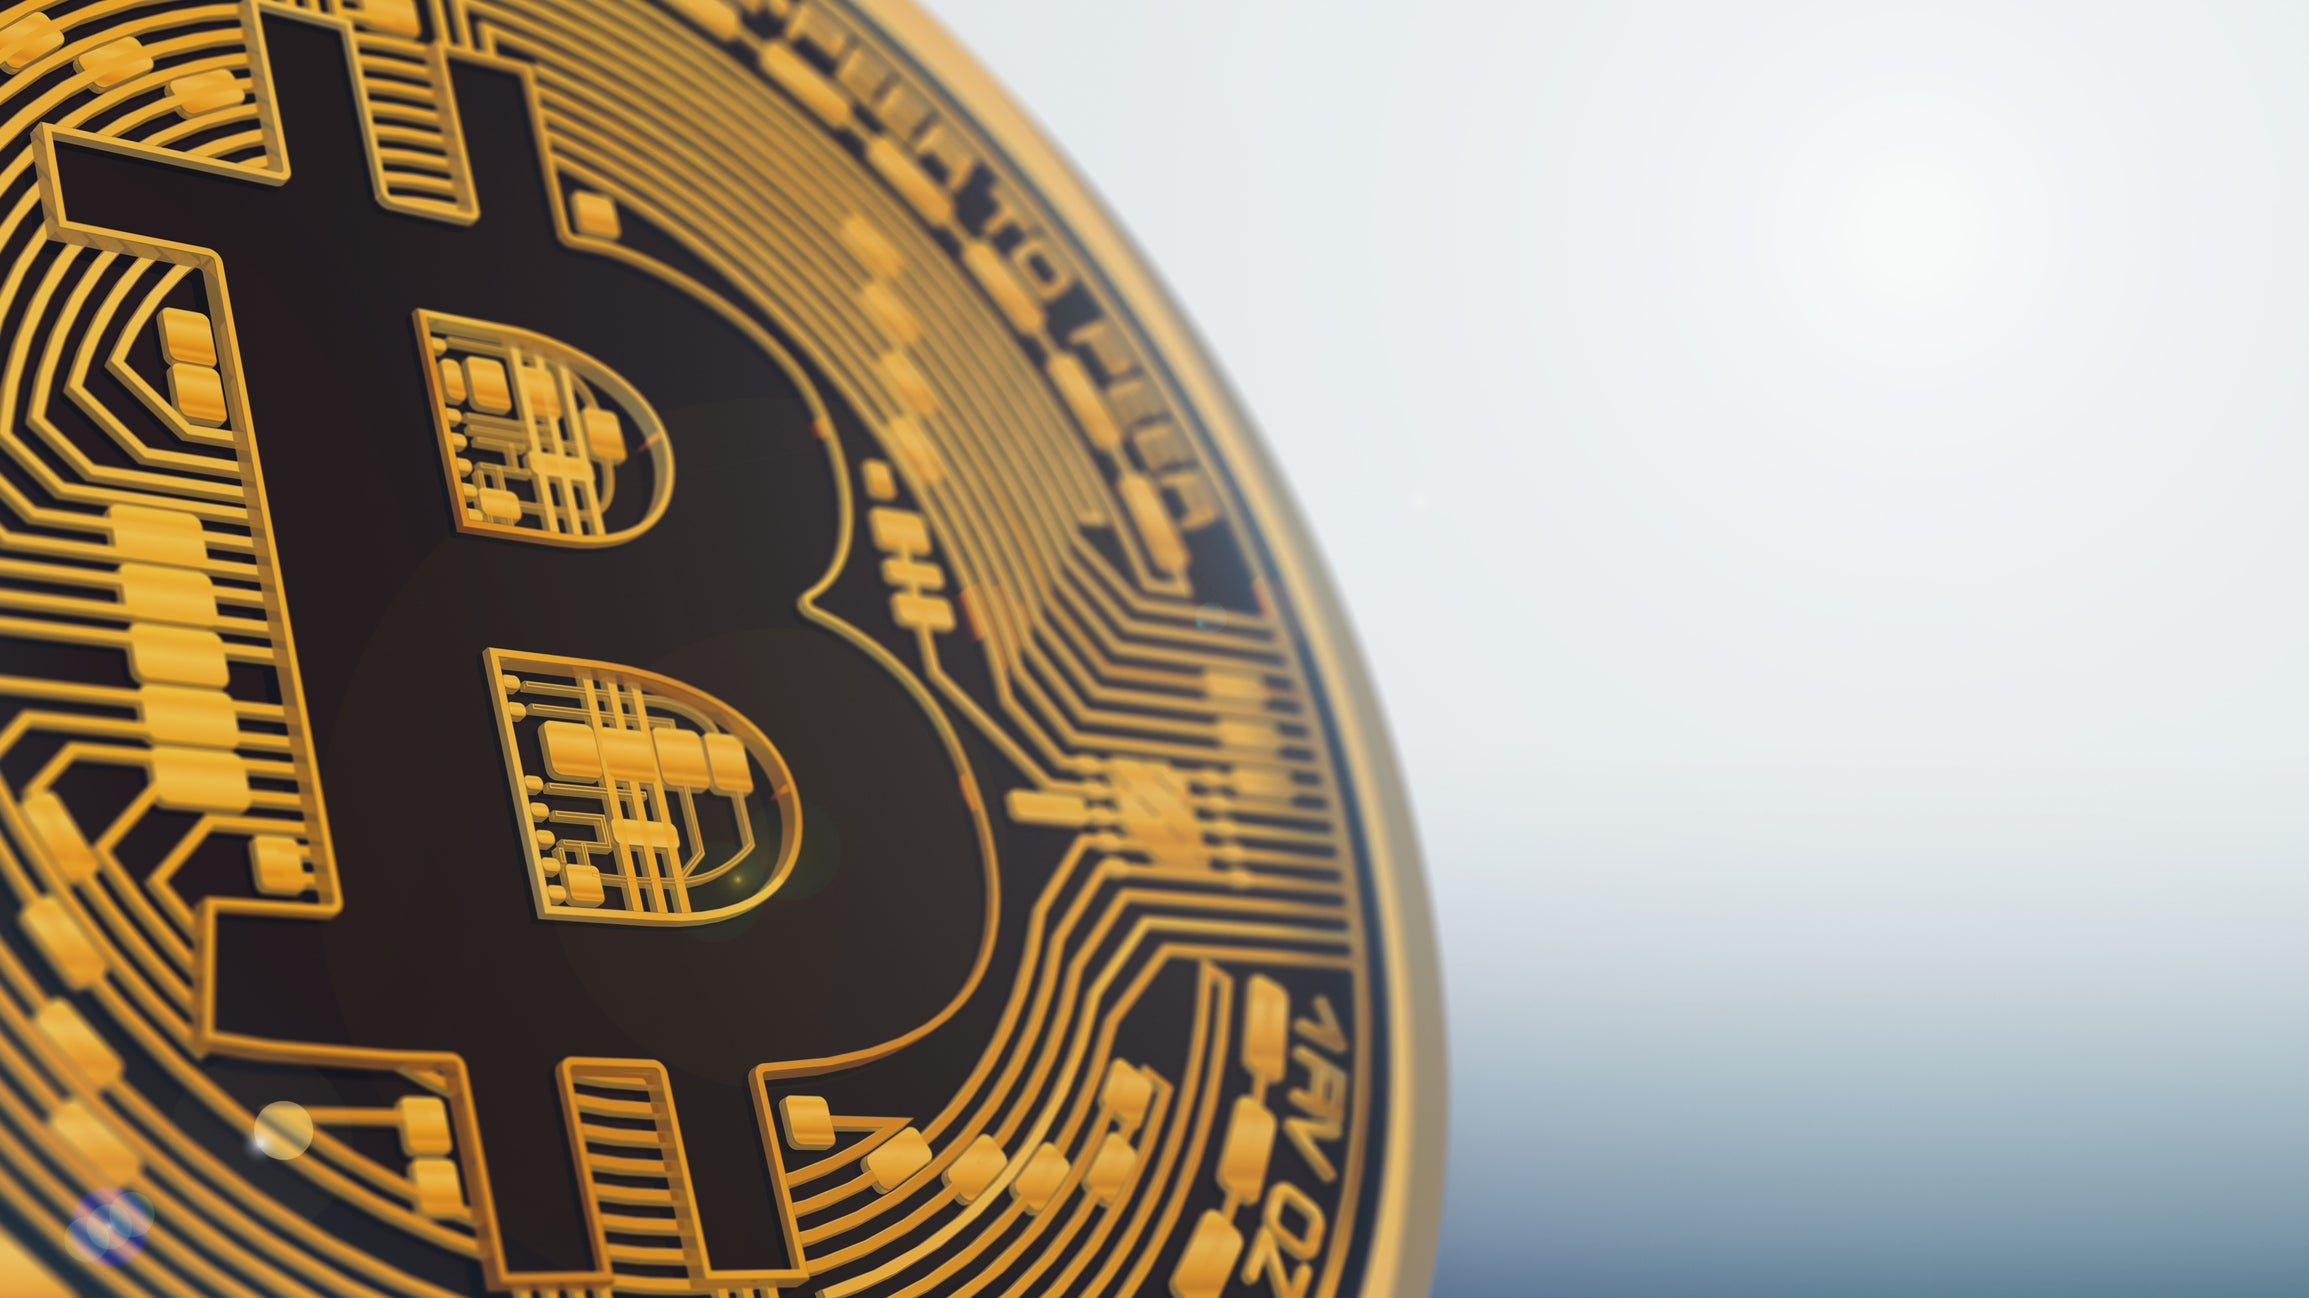 8 Reasons Bitcoin Has Lost $175 Billion in Market Cap in Less Than 2